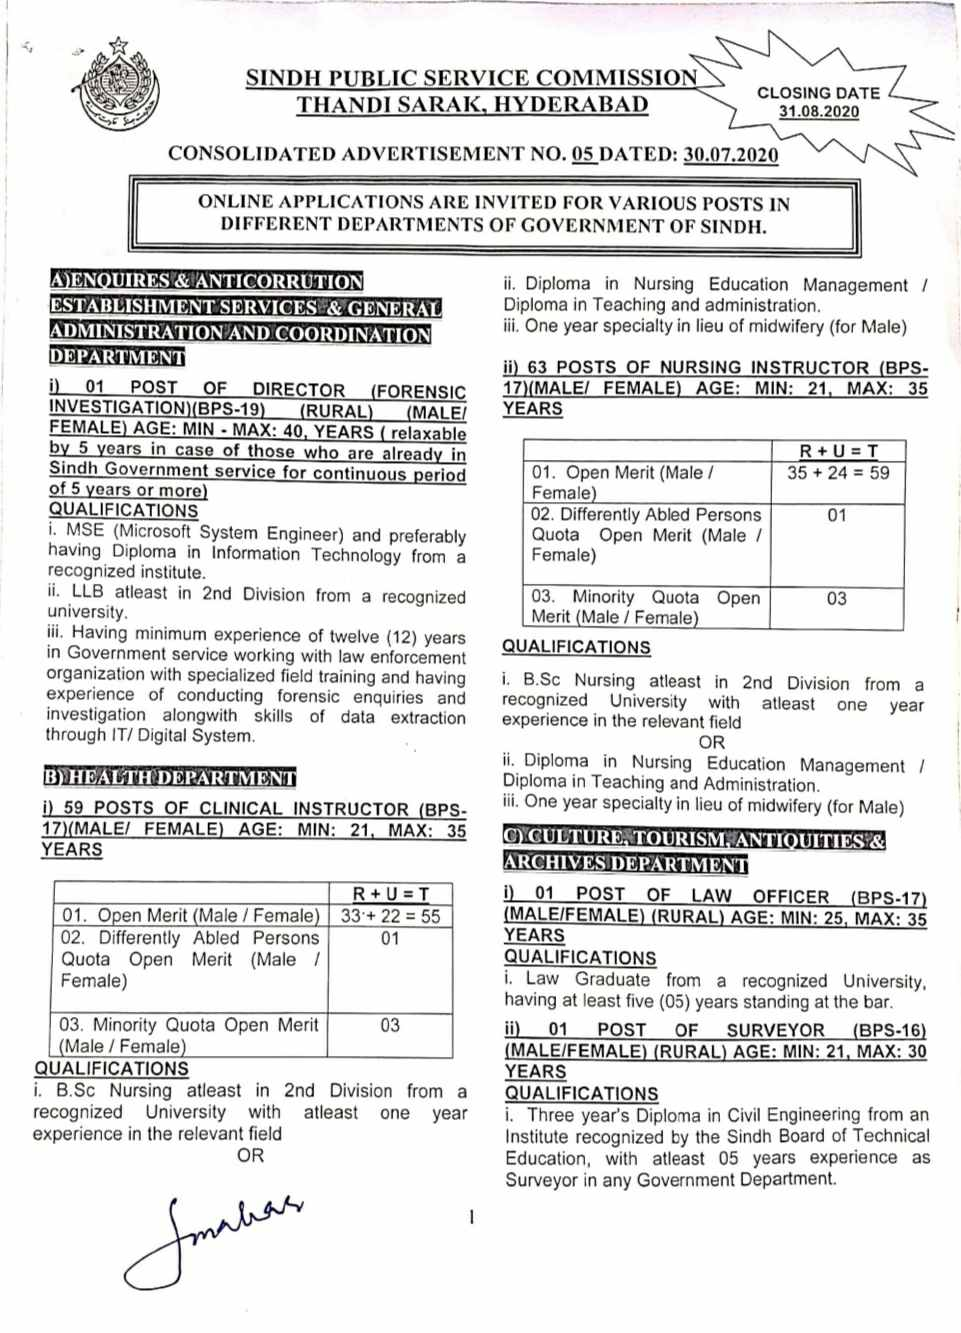 SPSC – SINDH PUBLIC SERVICE COMMISSION (AD NO. 05/2020) Latest Jobs Advertisement – Apply Online